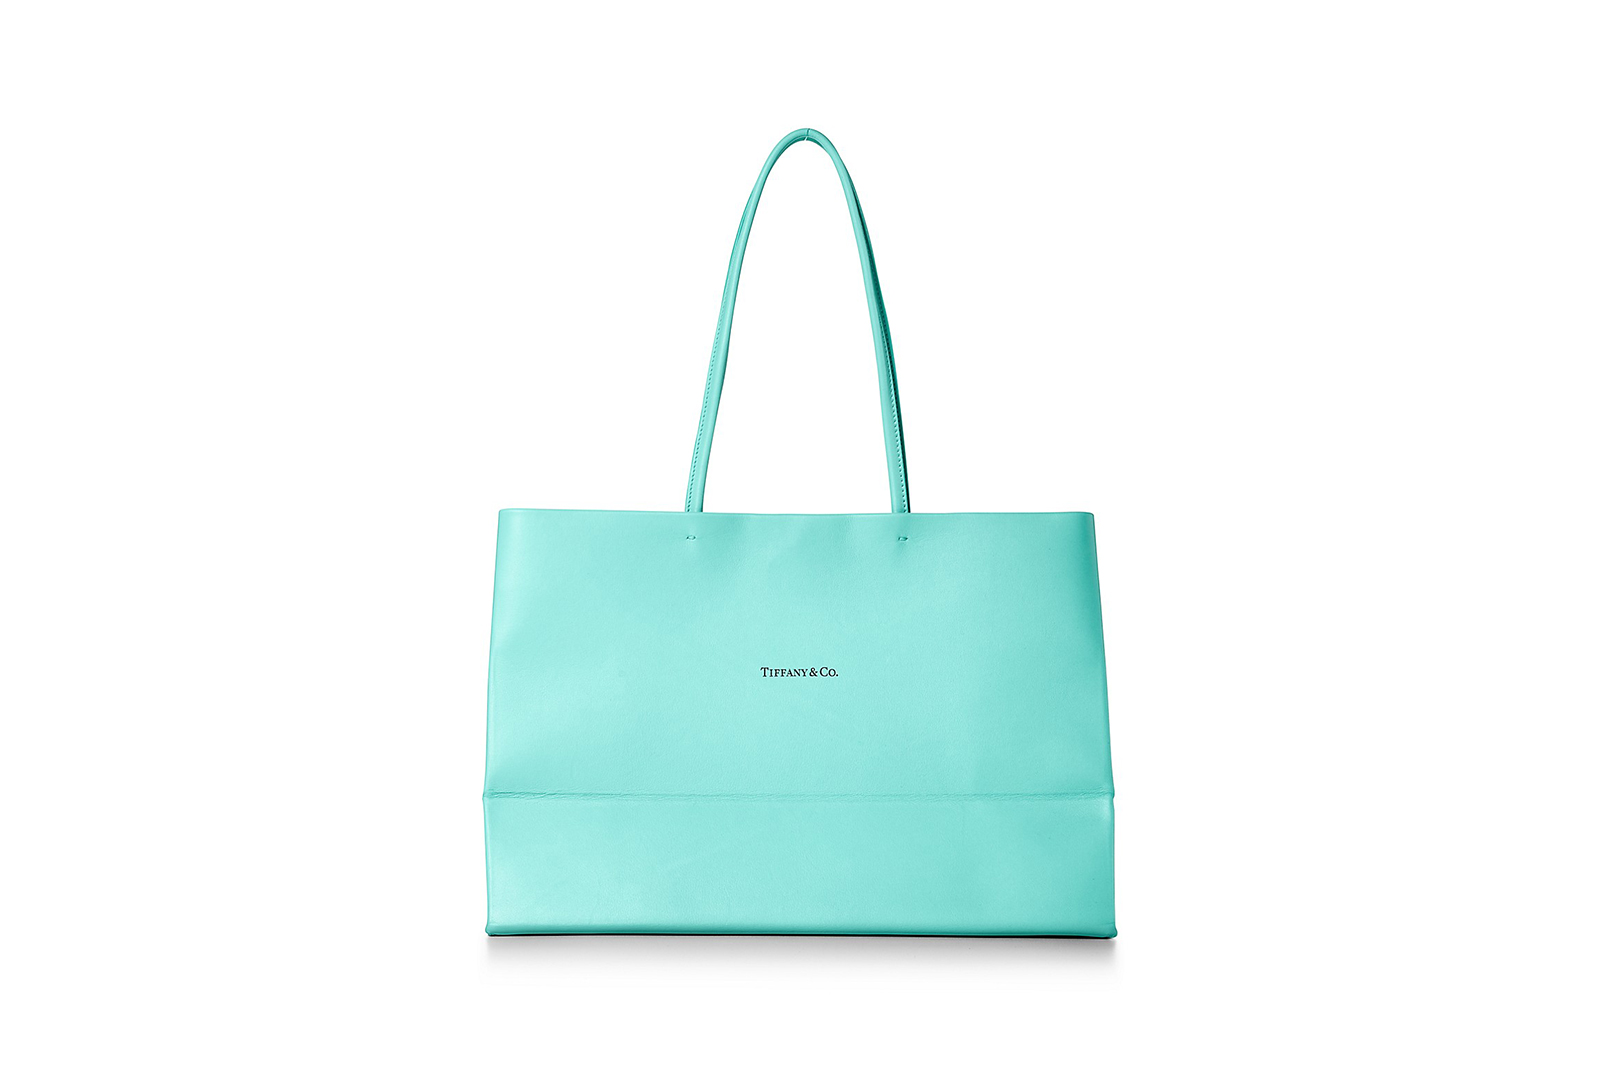 Tiffany & Co. Leather Tote Shopping Bag blue leather New York 68414180 leather goods